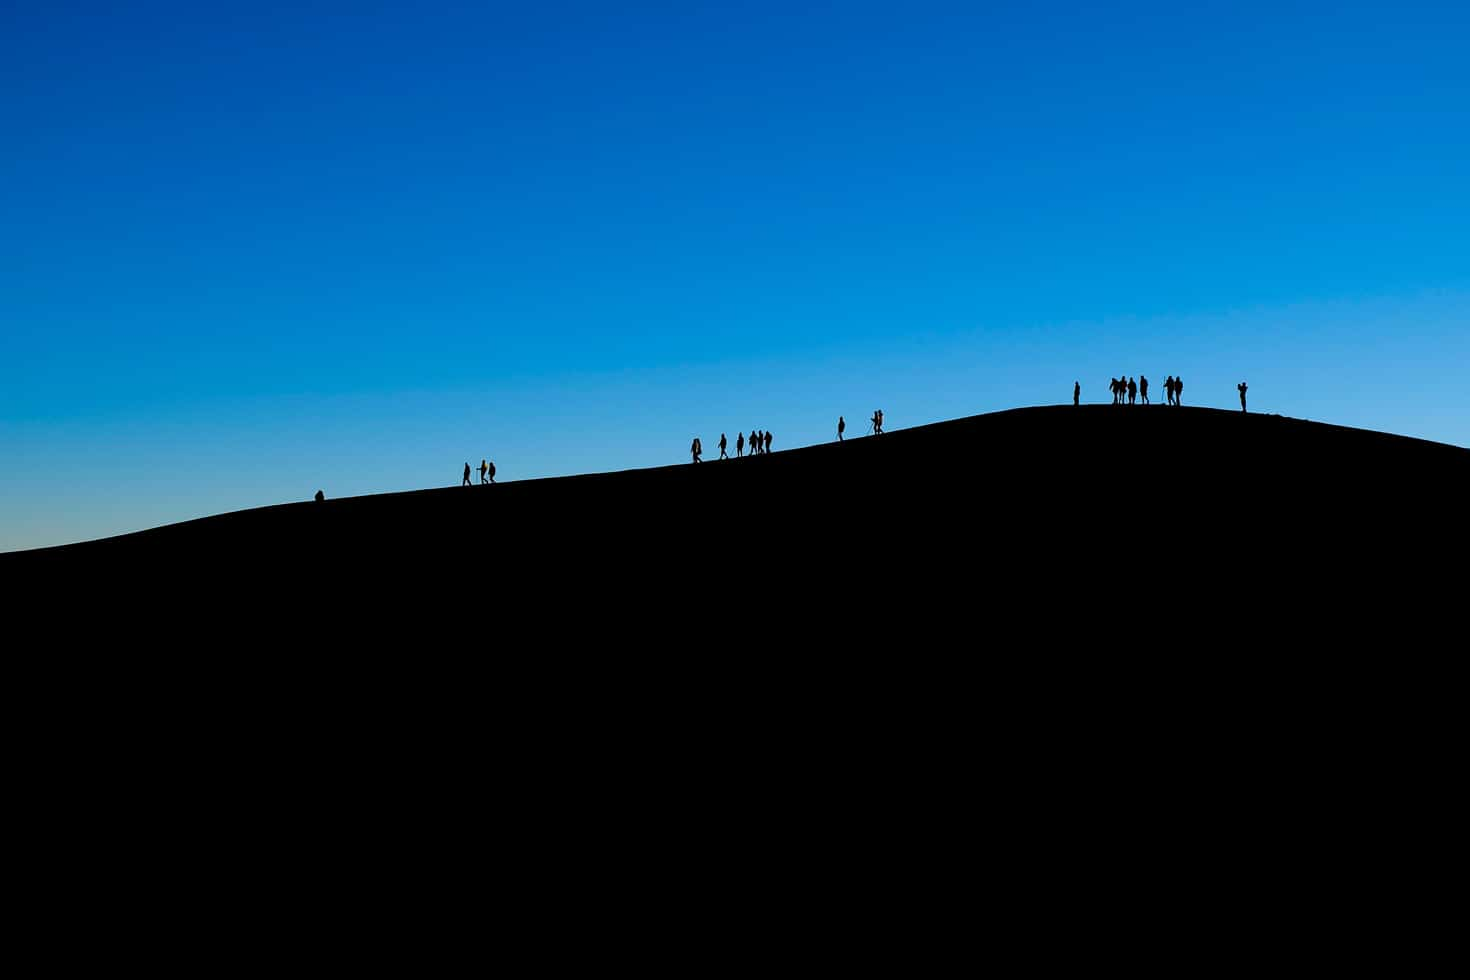 Hikers silhouetted while waiting for sunrise on Acatenango Volcano